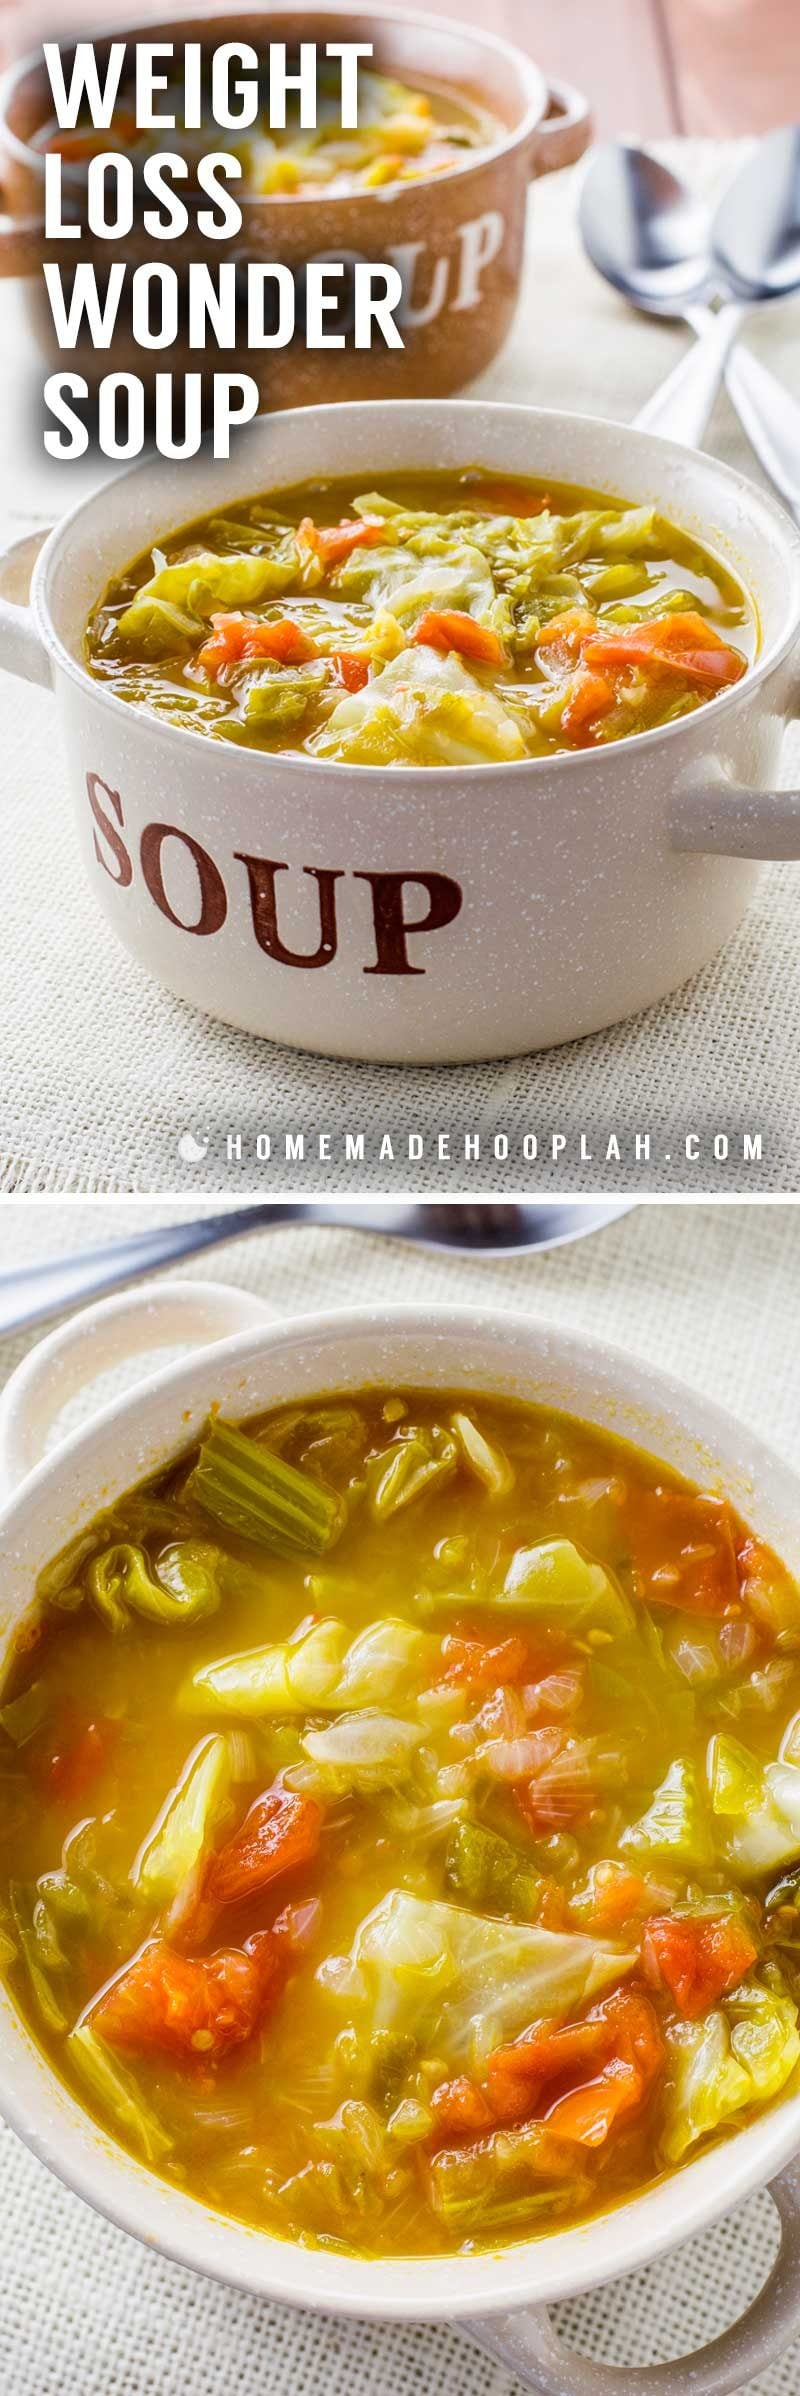 The original weight wonder loss soup.